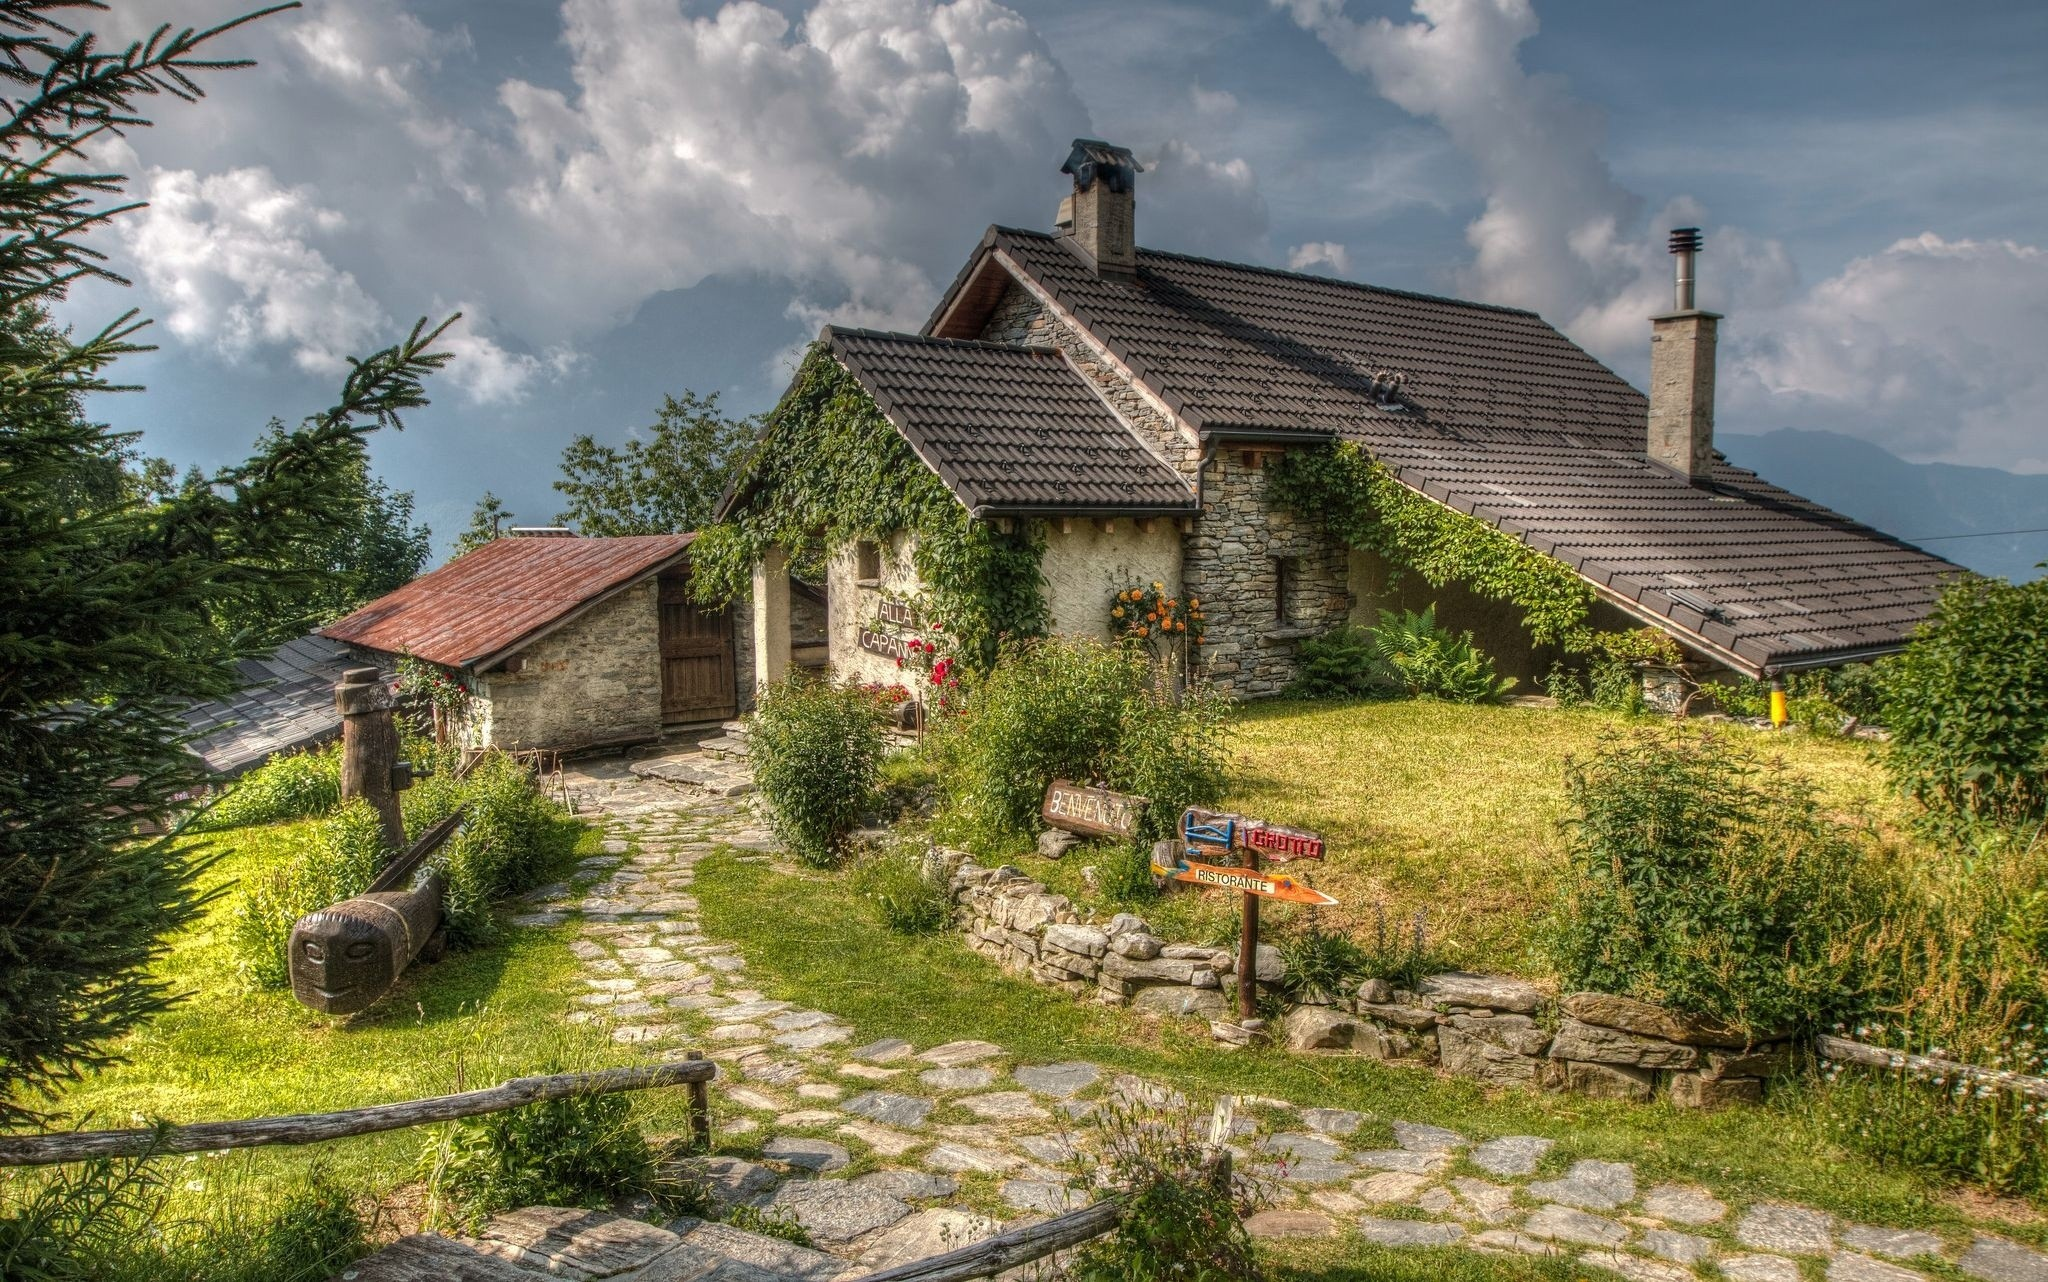 Sala E Cucina In Inglese Sky, House, Italy, Stone House, Trees, Clouds Wallpapers